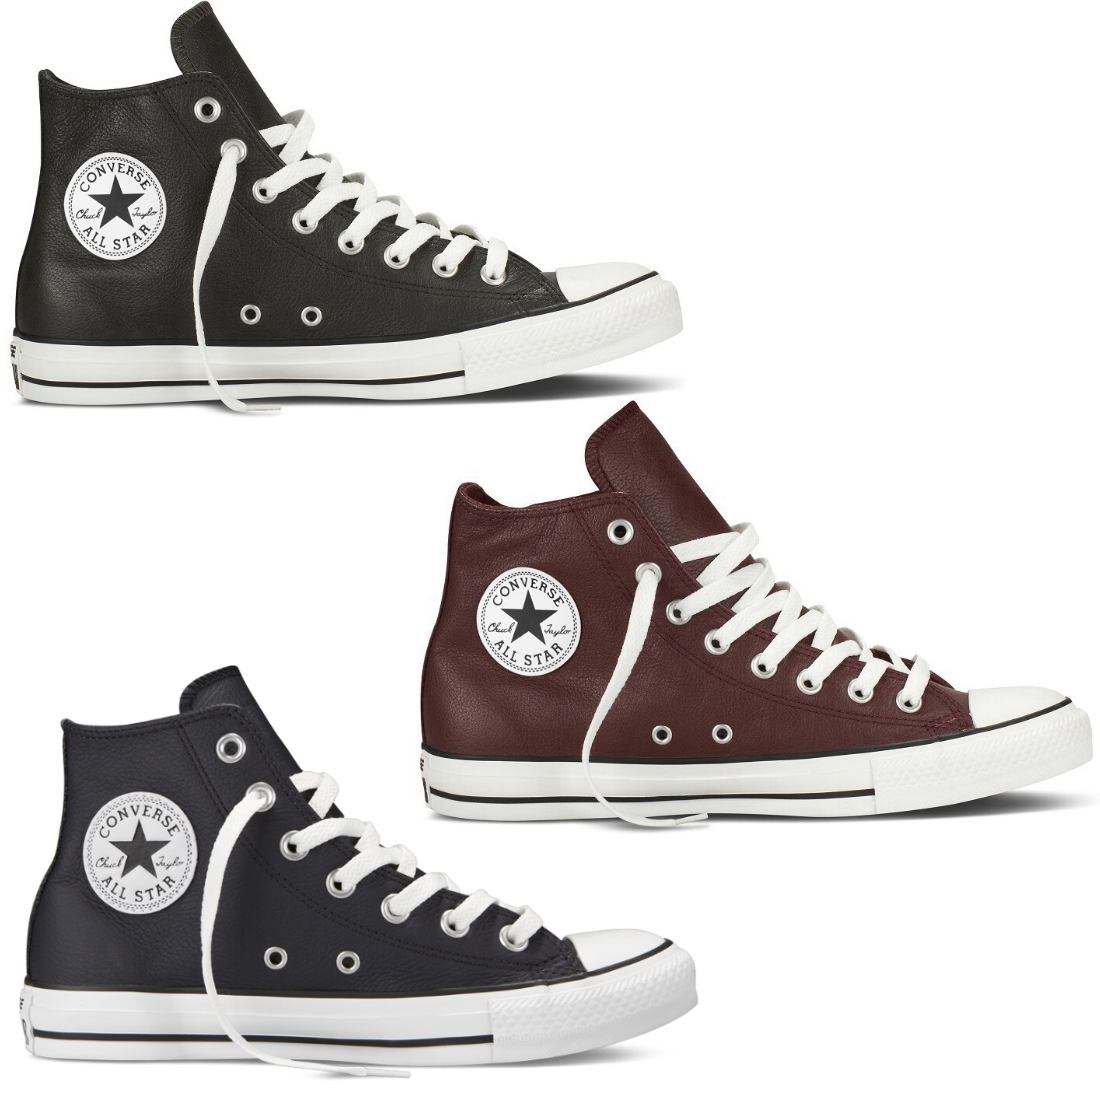 converse chucks leder braun herren kuechenstudio. Black Bedroom Furniture Sets. Home Design Ideas